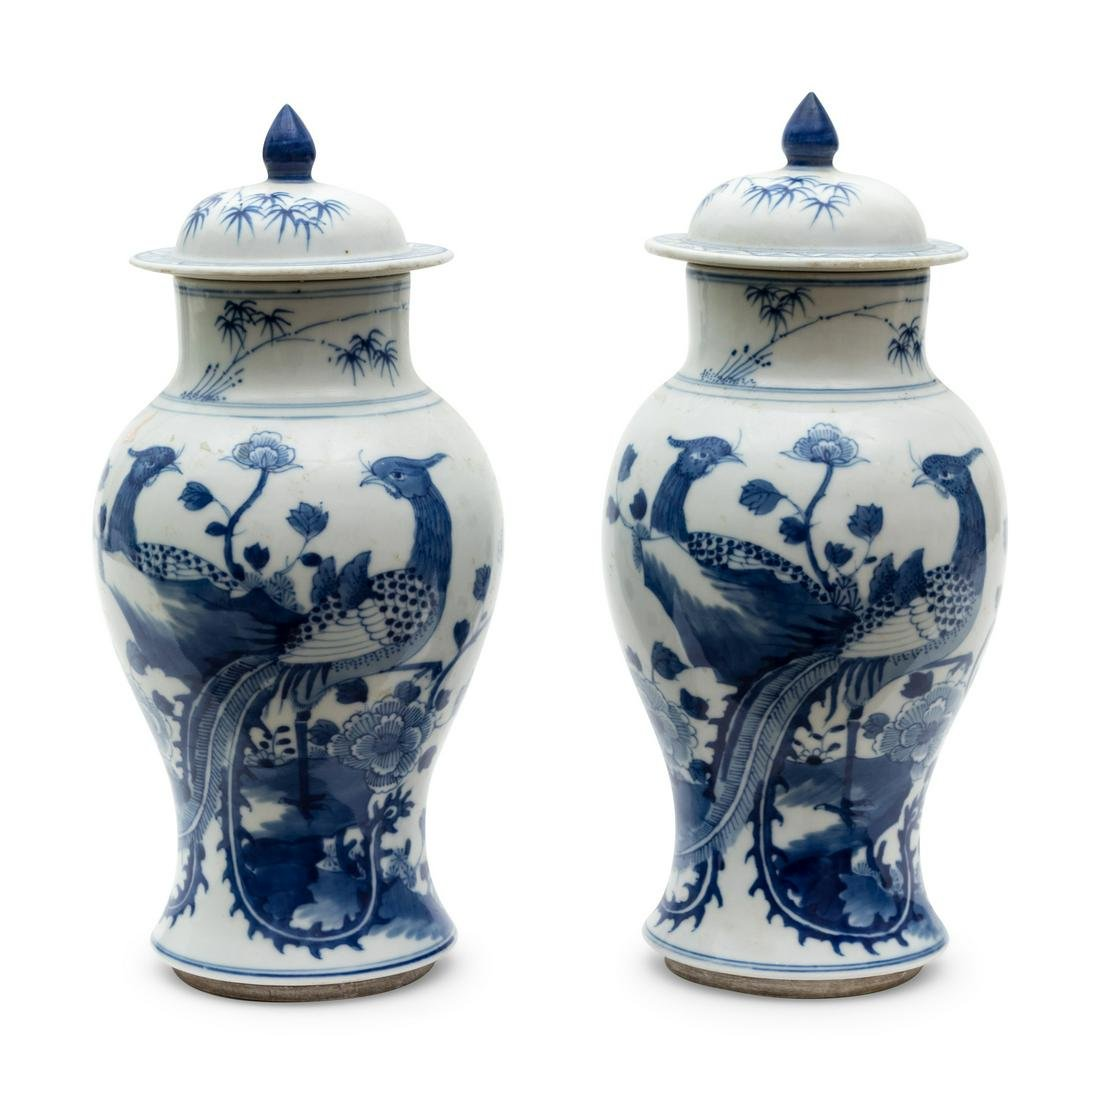 A Pair of Chinese Blue and White Porcelain Lidded Jars